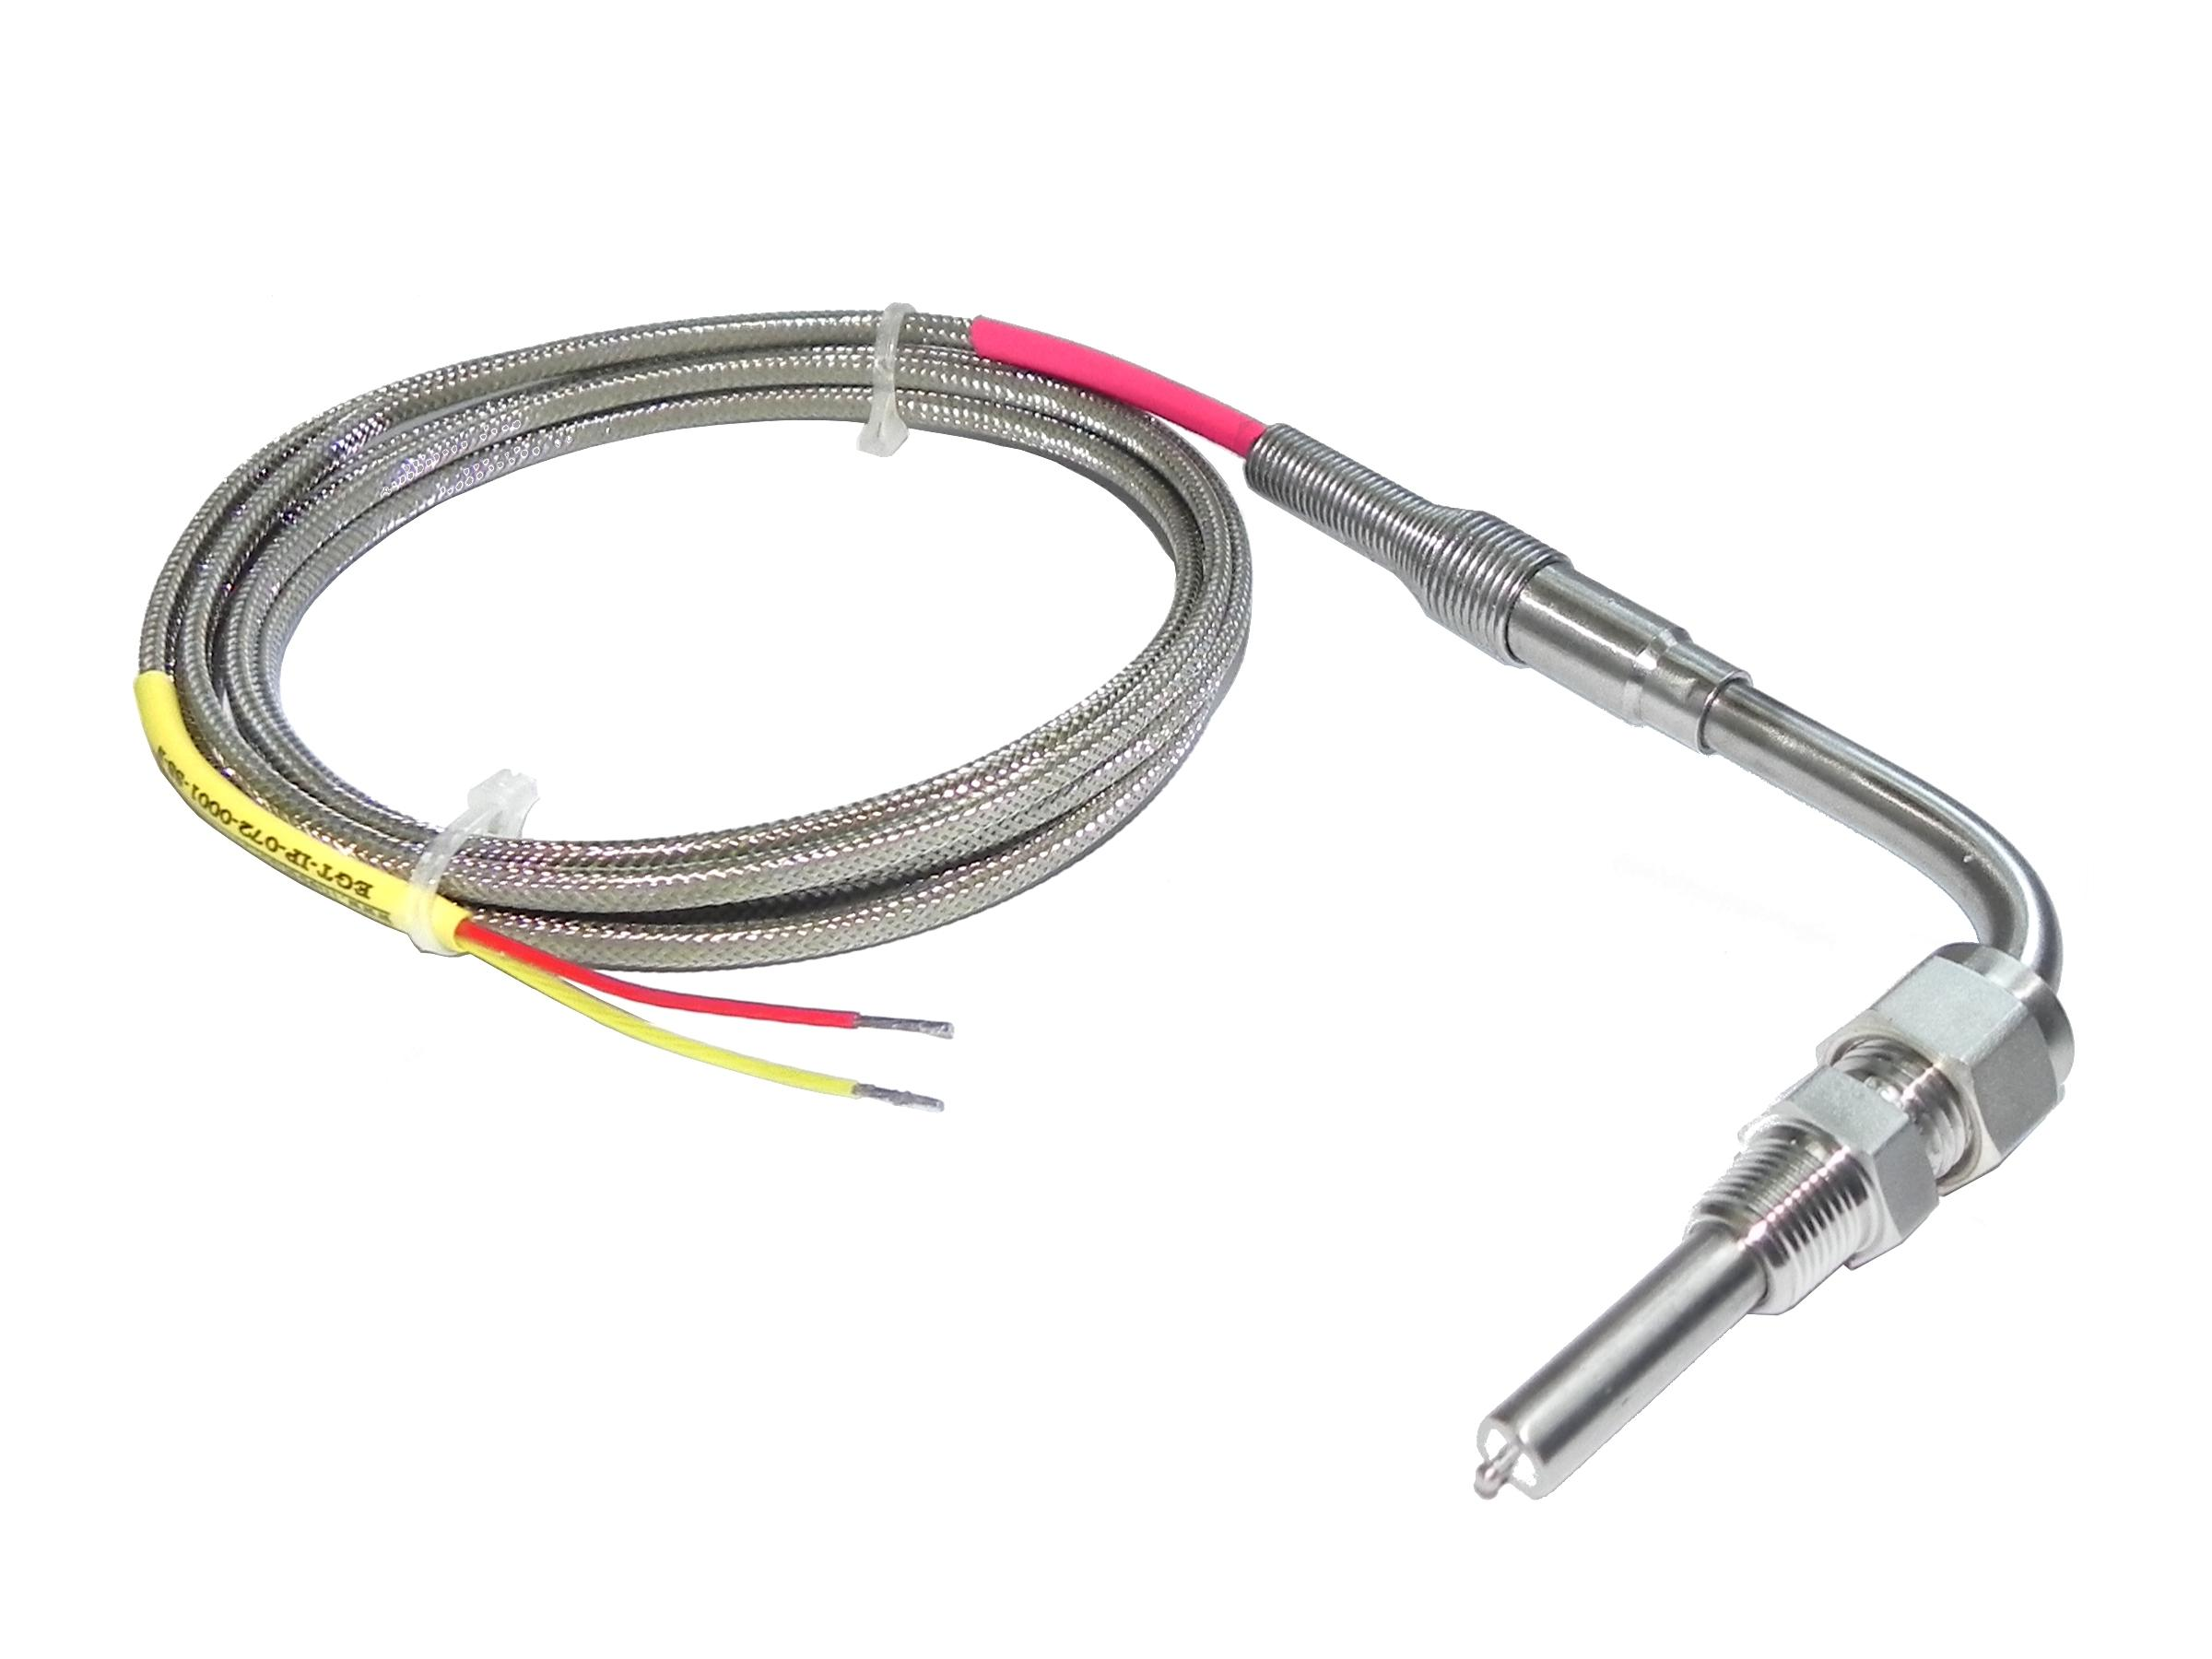 Egt Probe Exhaust Gas Temperature Sensor